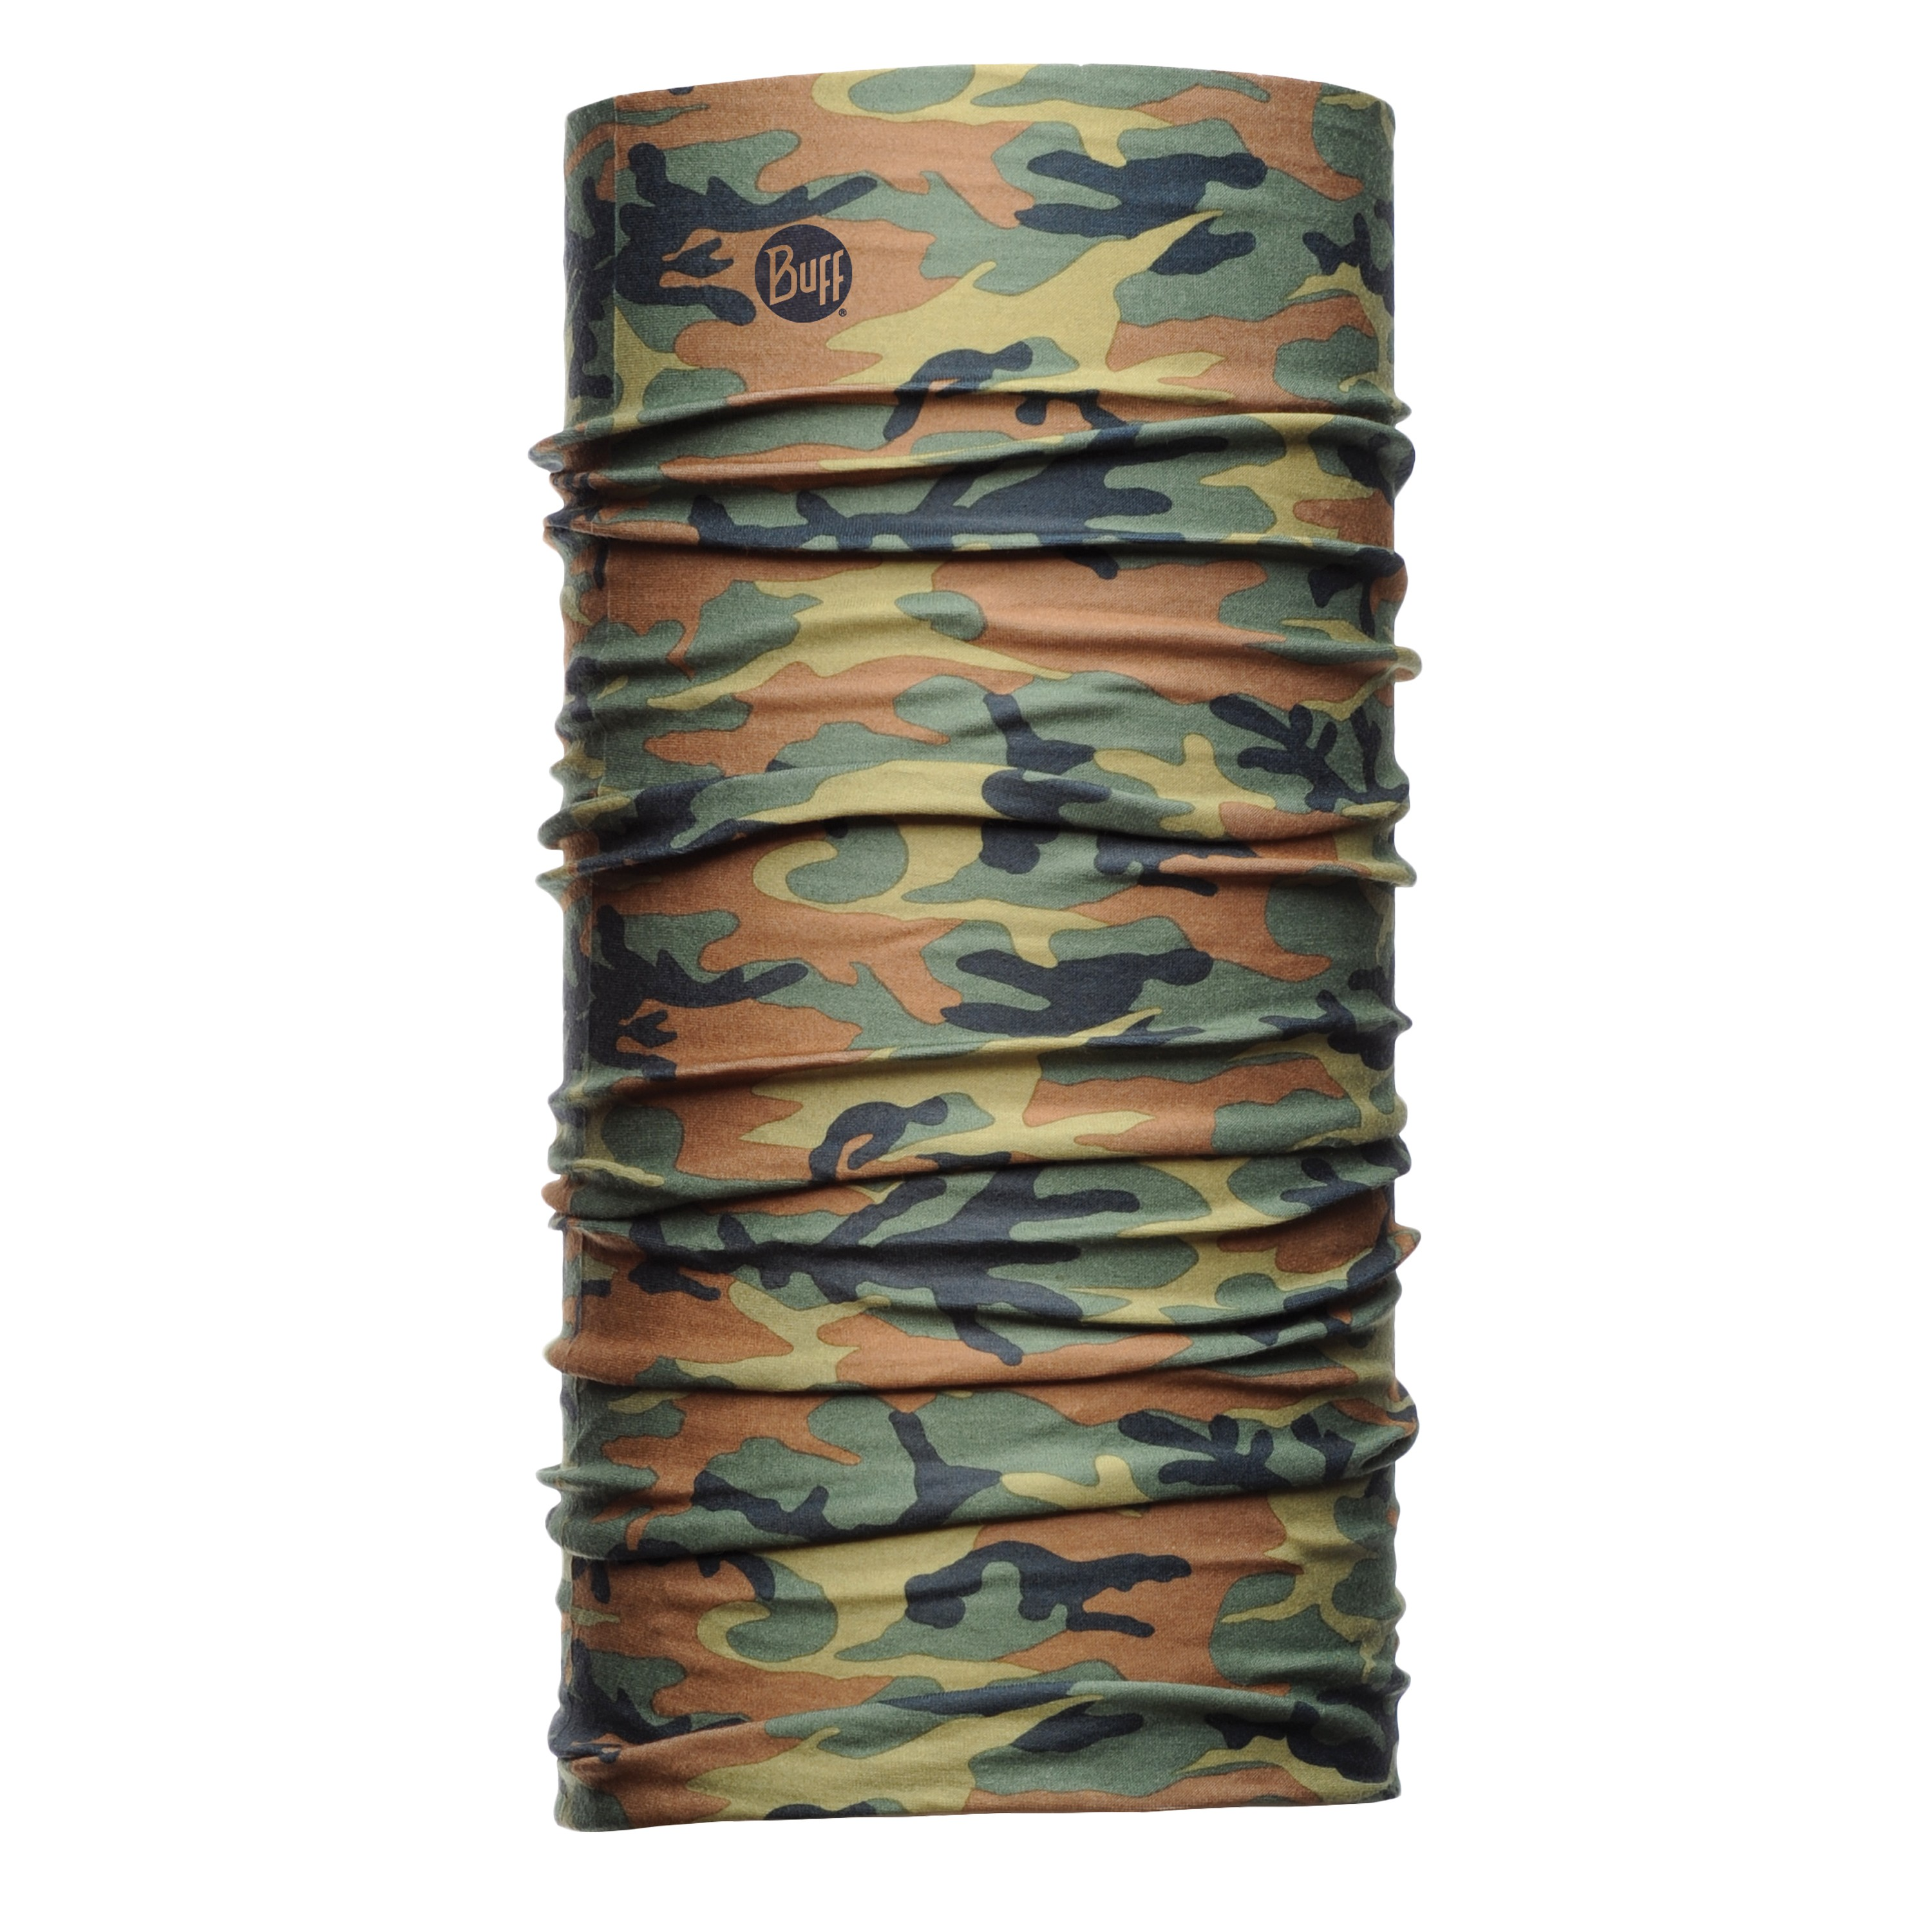 Schlauchtuch Buff dry-cool Camu